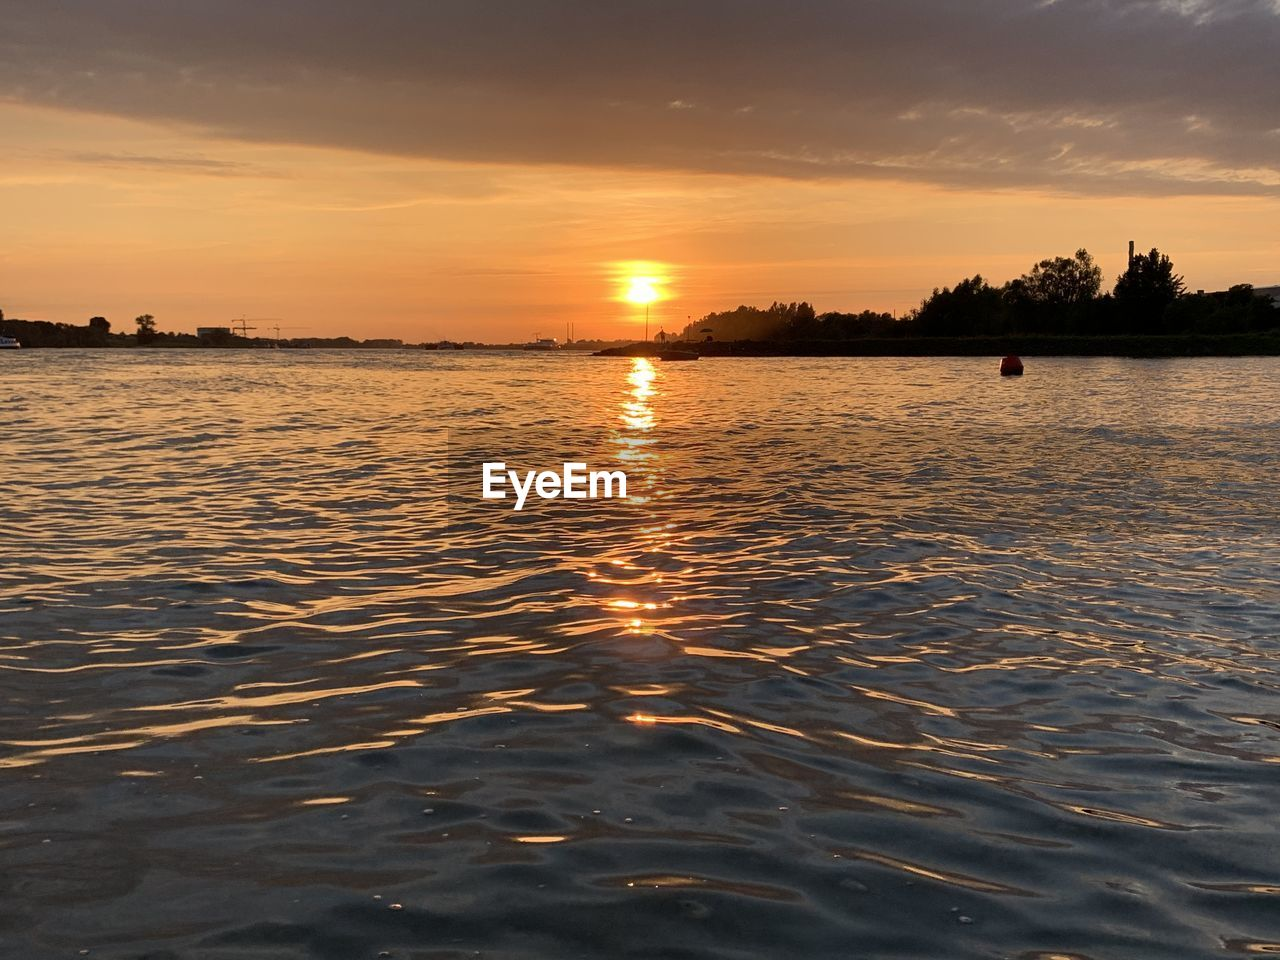 sunset, sky, water, beauty in nature, scenics - nature, waterfront, orange color, tranquility, tranquil scene, cloud - sky, nature, reflection, idyllic, sea, silhouette, rippled, no people, non-urban scene, outdoors